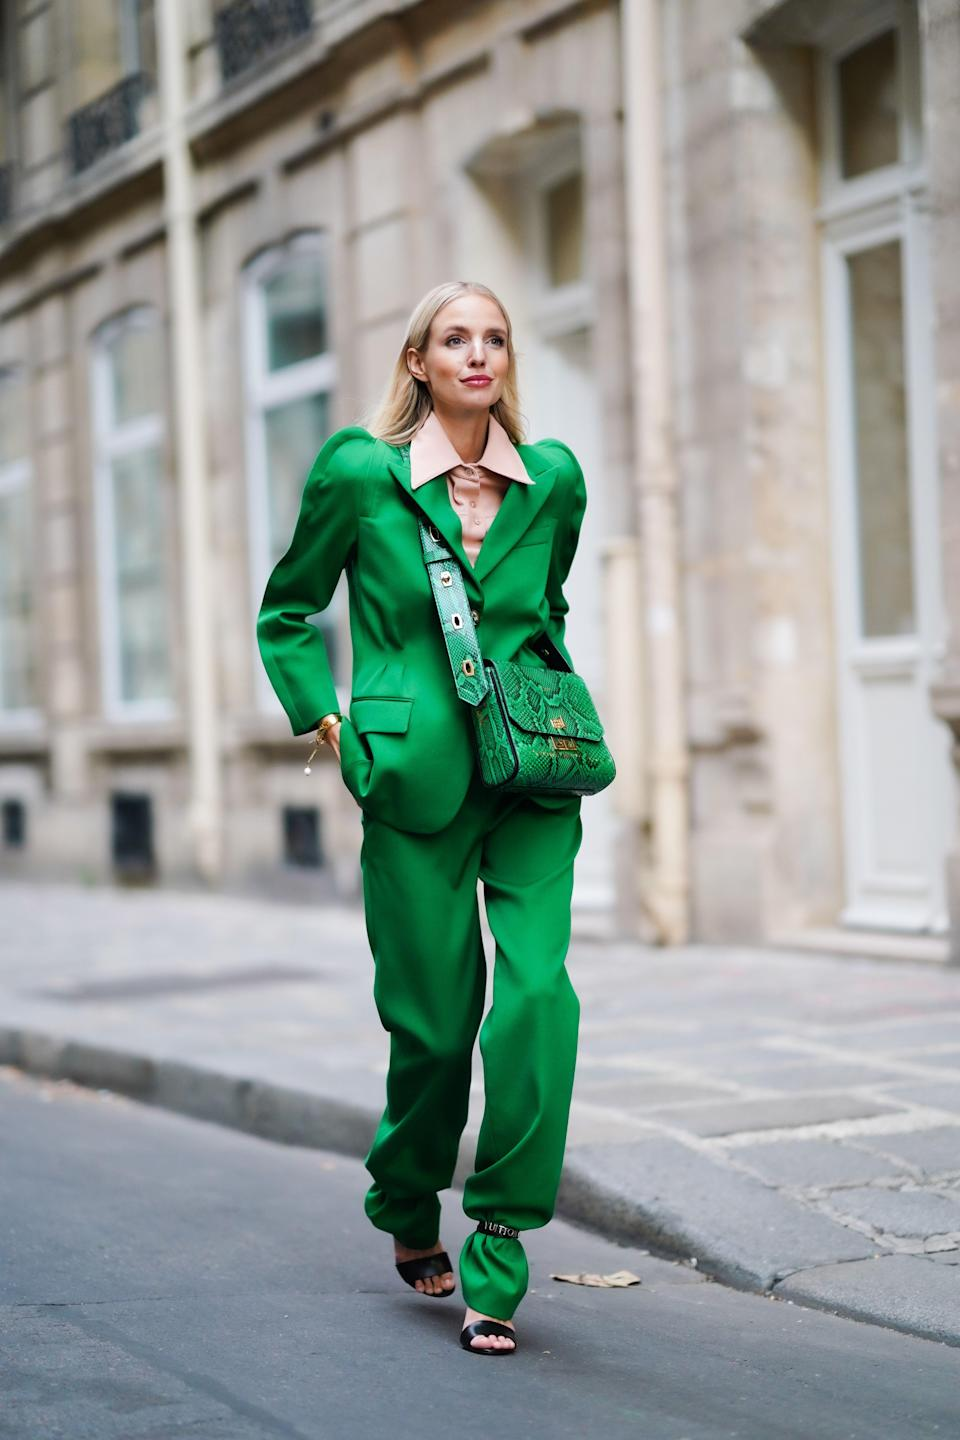 <p>Over the years, the classic shirt has been reinvented many times – whether with a Seventies pussy bow or a collarless neck – but it's the big collar version we're loving for spring.</p><p>The style was a big hit in the Chanel Resort 2020 collection and has since been revived by both high-end designers and the high street. Cult New York label Sea added ruffles to their version, Shrimps went for gingham and Ganni updated the classic Western denim shirt with a prominent neckline. </p><p>An item that can be dressed up or down, the style is an excellent addition to any wardrobe and one you'll wear for seasons to come. </p><p>Here we round up our favourite styles to shop now. Whether you opt for all-out pattern or to stick to one colour, no big collar is too big in our book.</p>